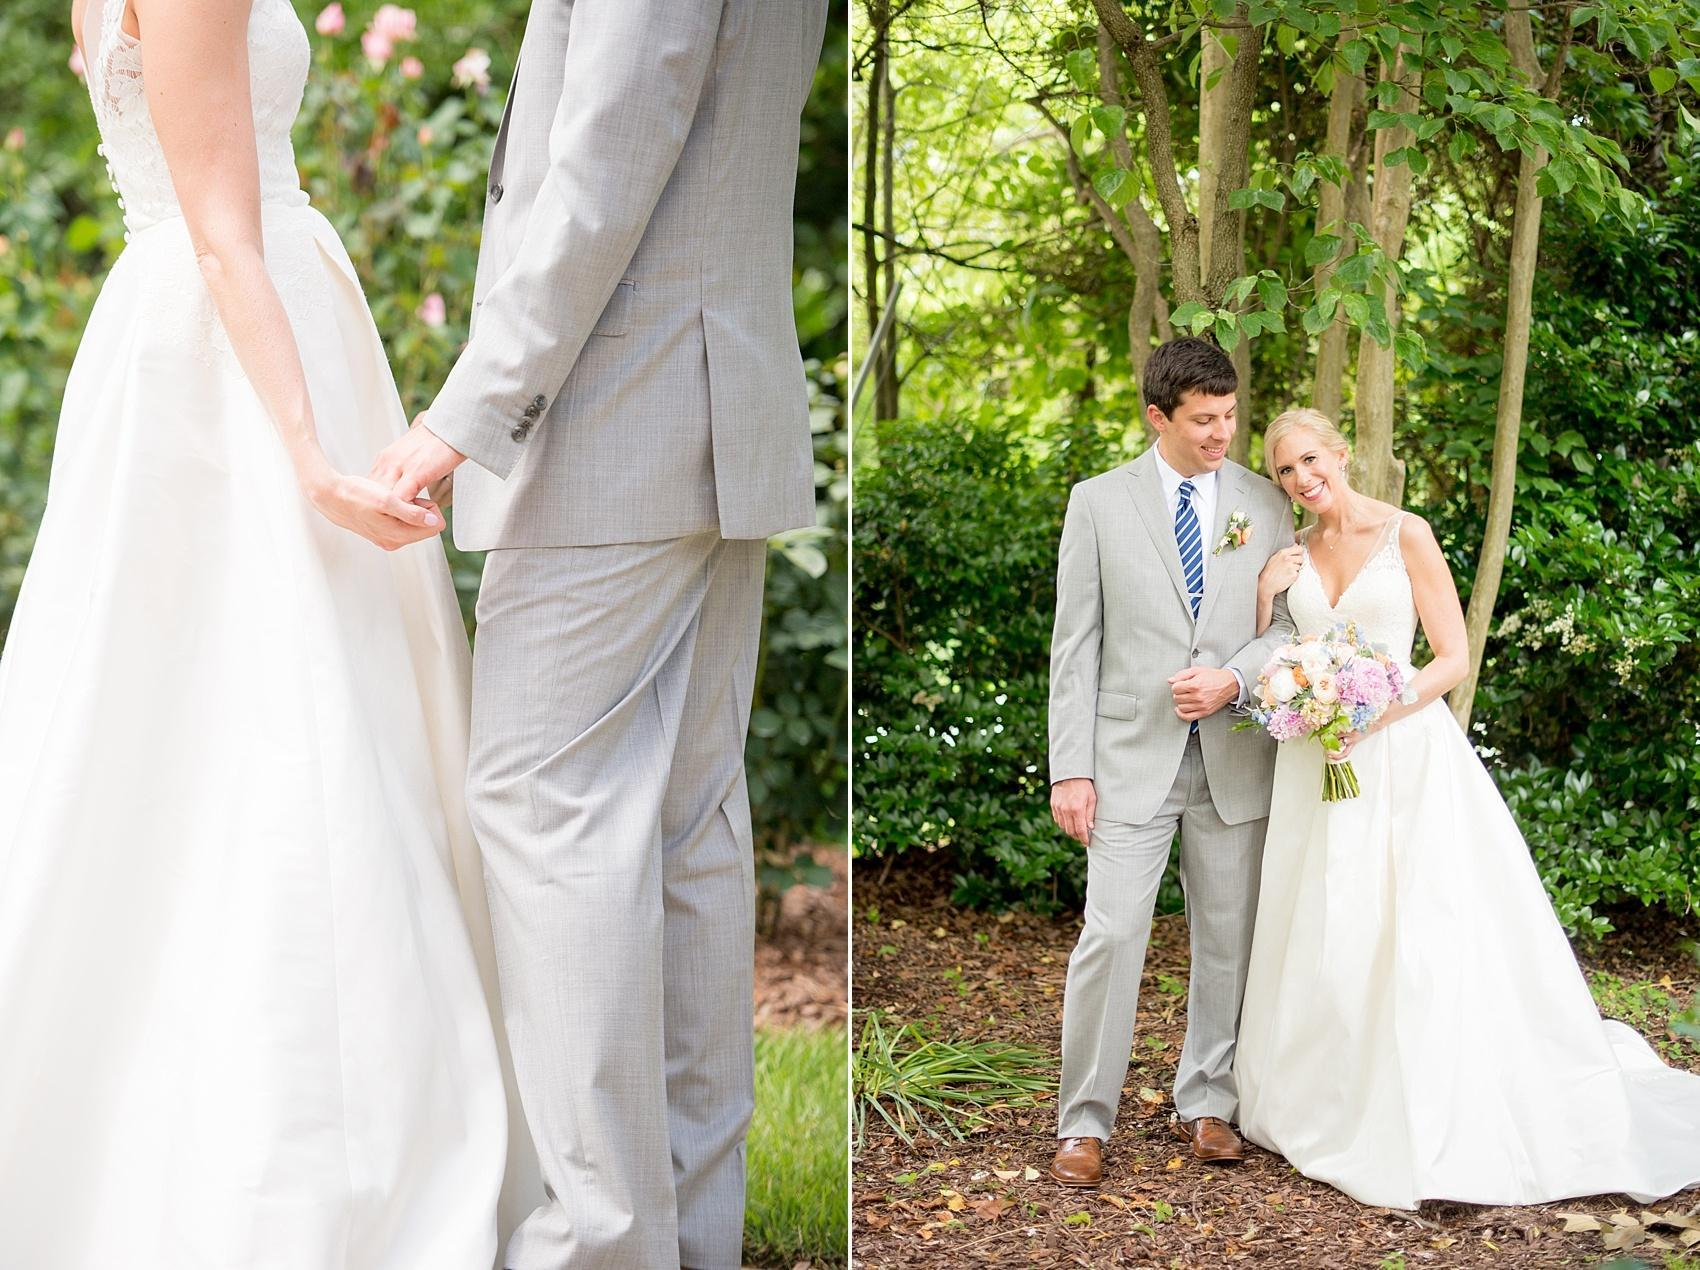 Mikkel Paige Photography photos of a downtown Raleigh Market Hall wedding with spring pictures of the bride and groom amidst a garden.